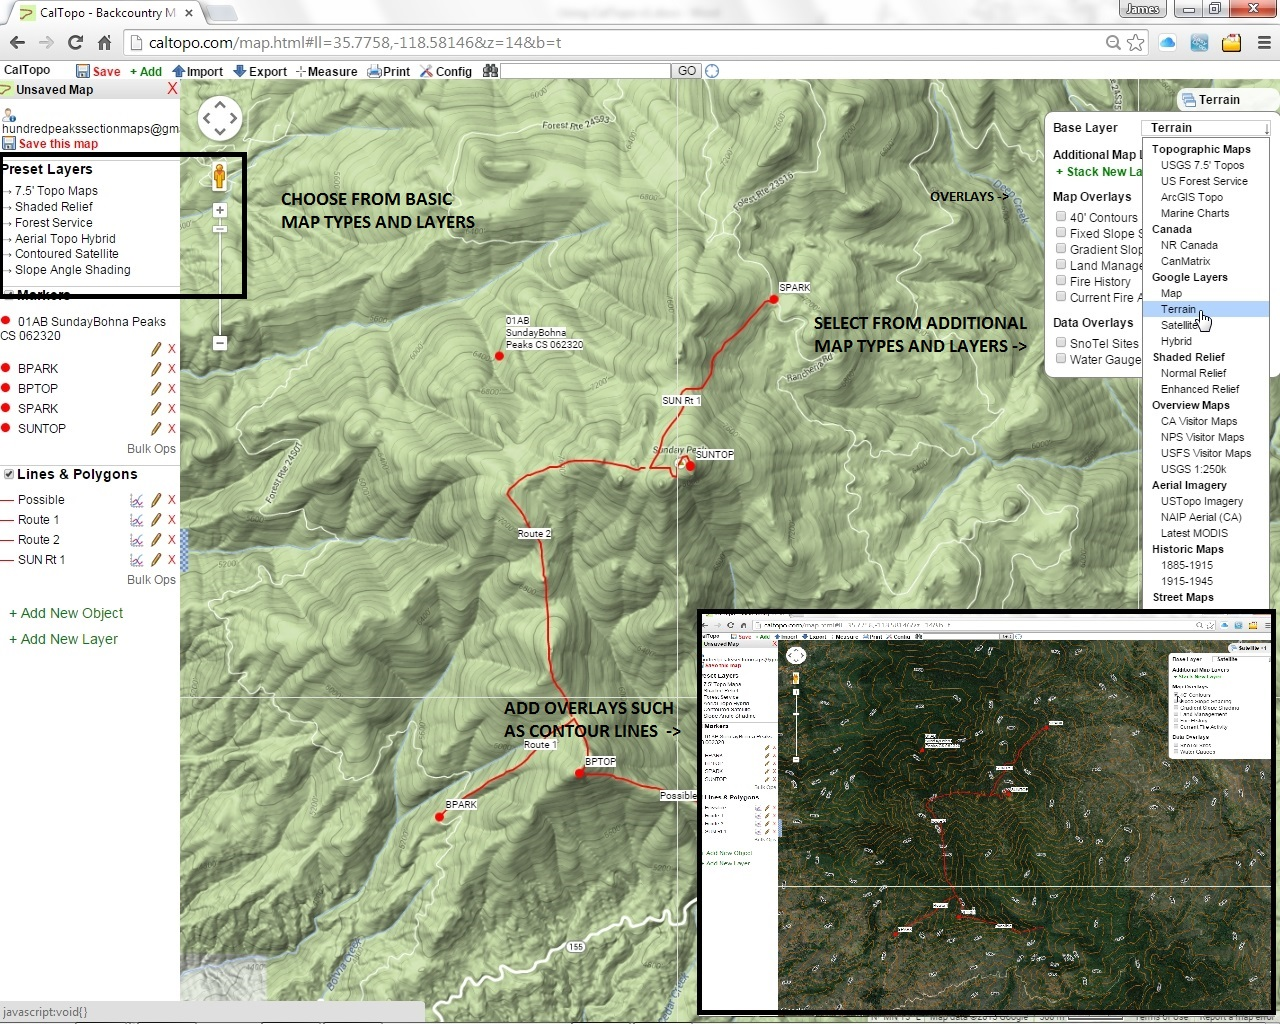 USING CALTOPO WITH HPS MAPS - Map layers for us arcgis